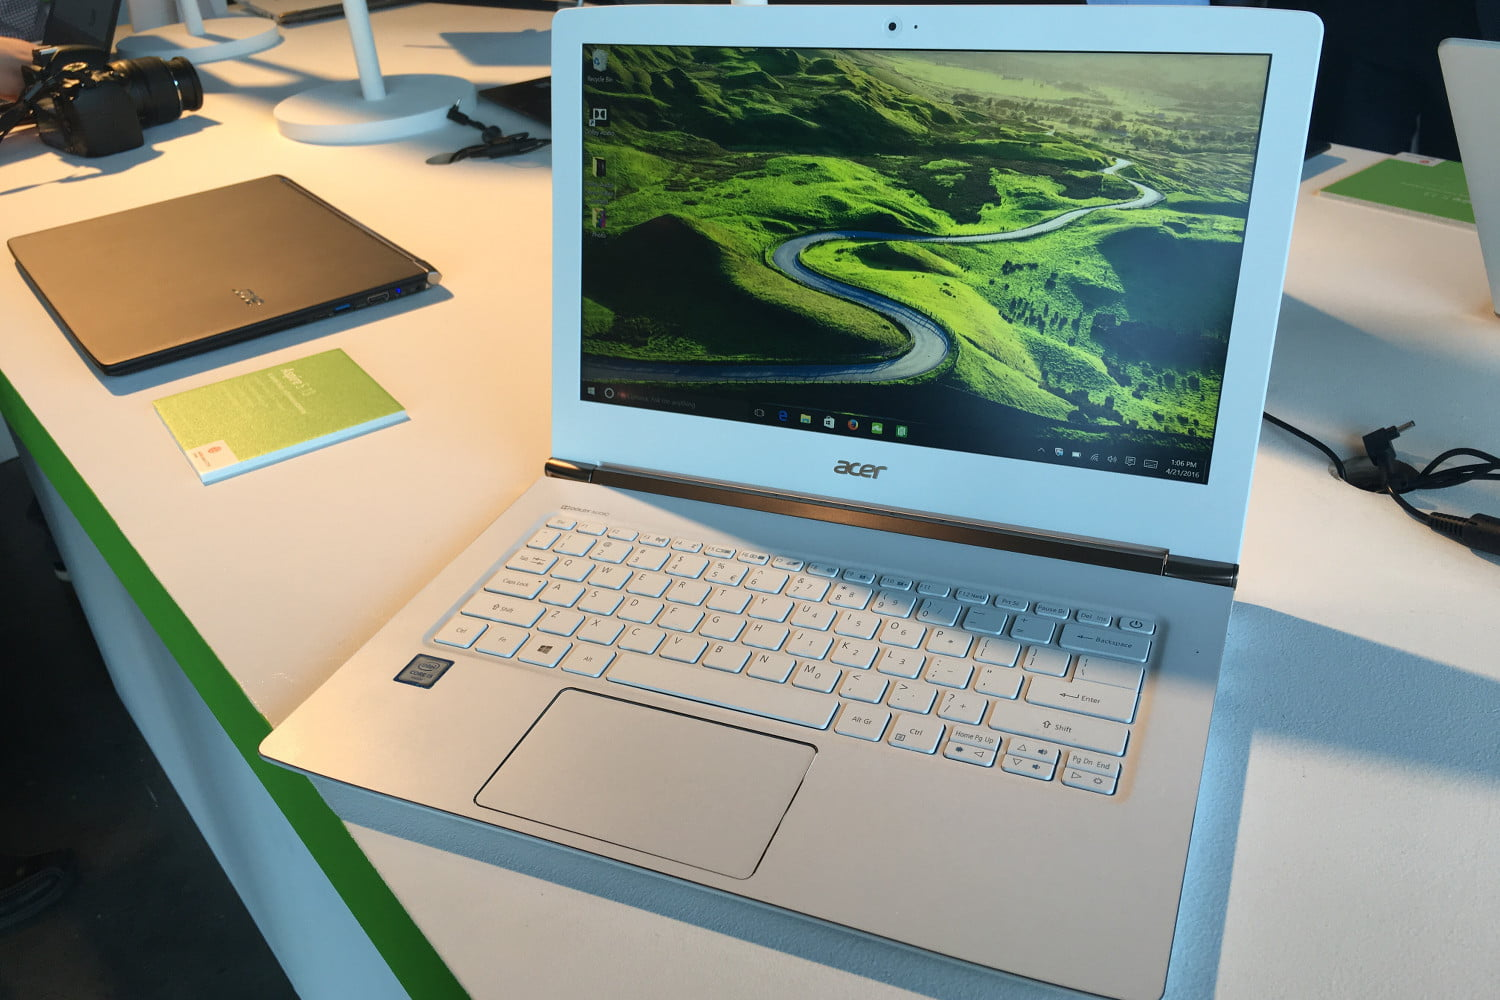 acer nyc event pc refresh aceraspires13 5